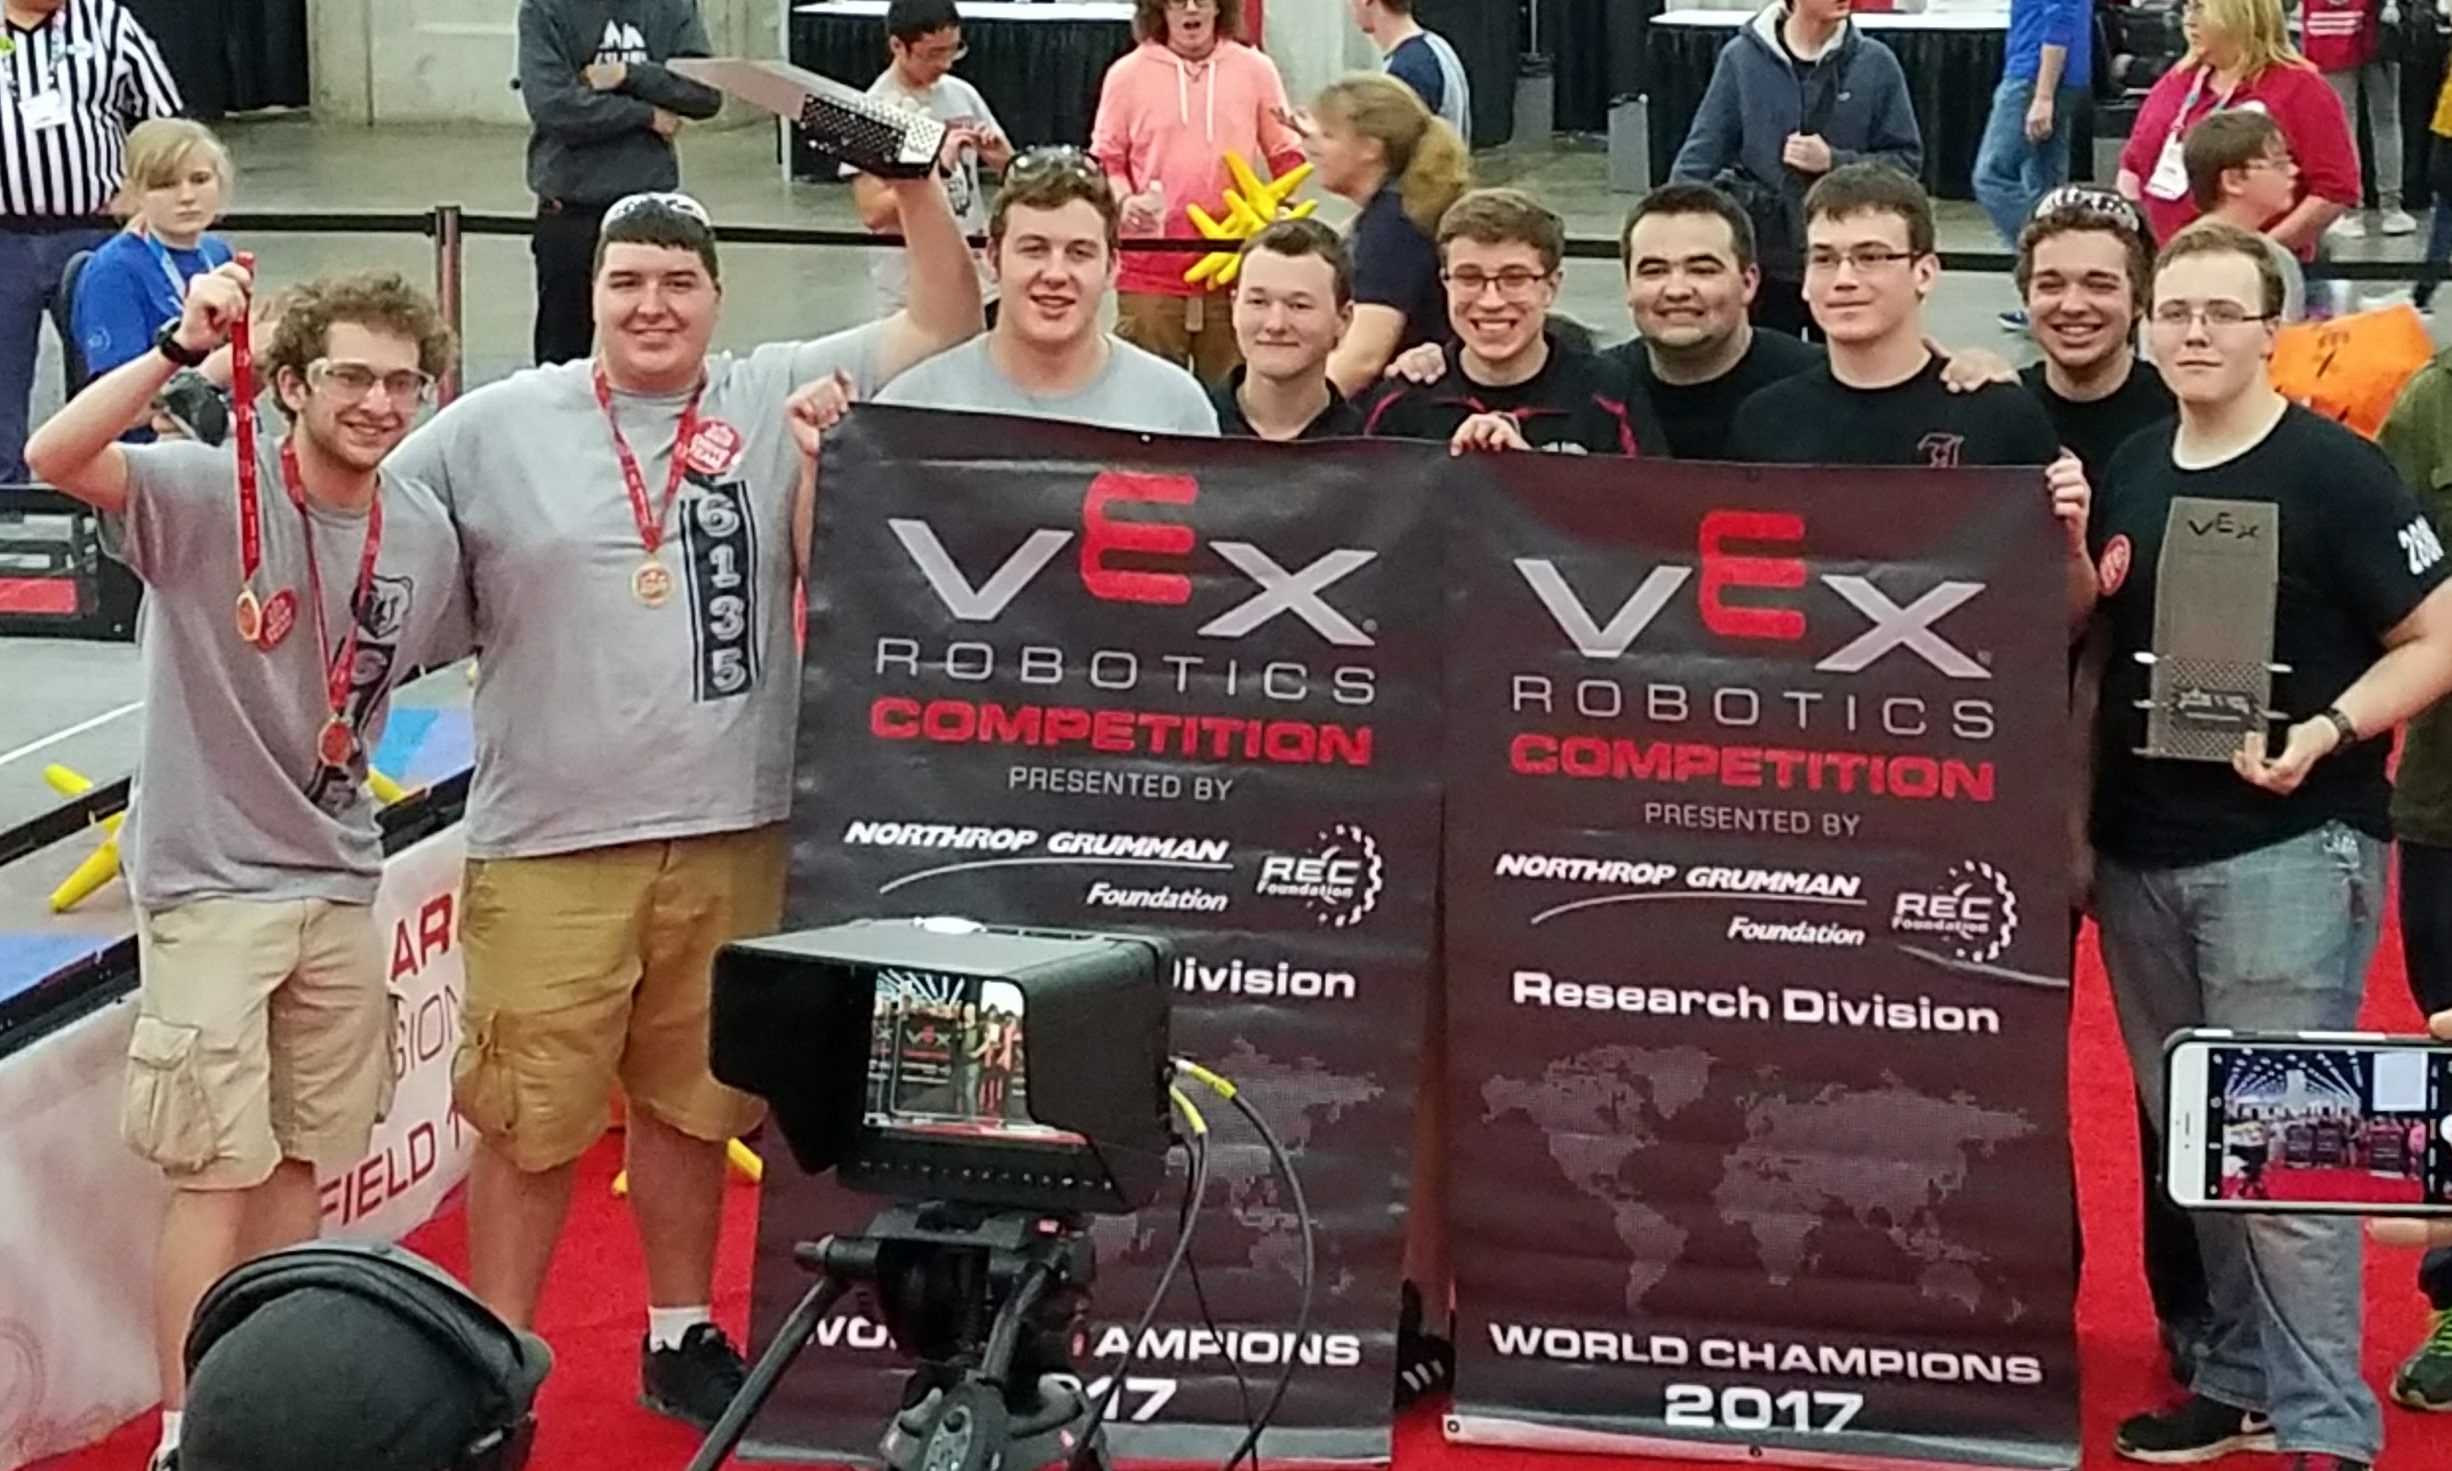 CHHS & JHHS VEX ROBOTICS TEAM EARN 3RD PLACE AT WORLD CHAMPIONSHIPS